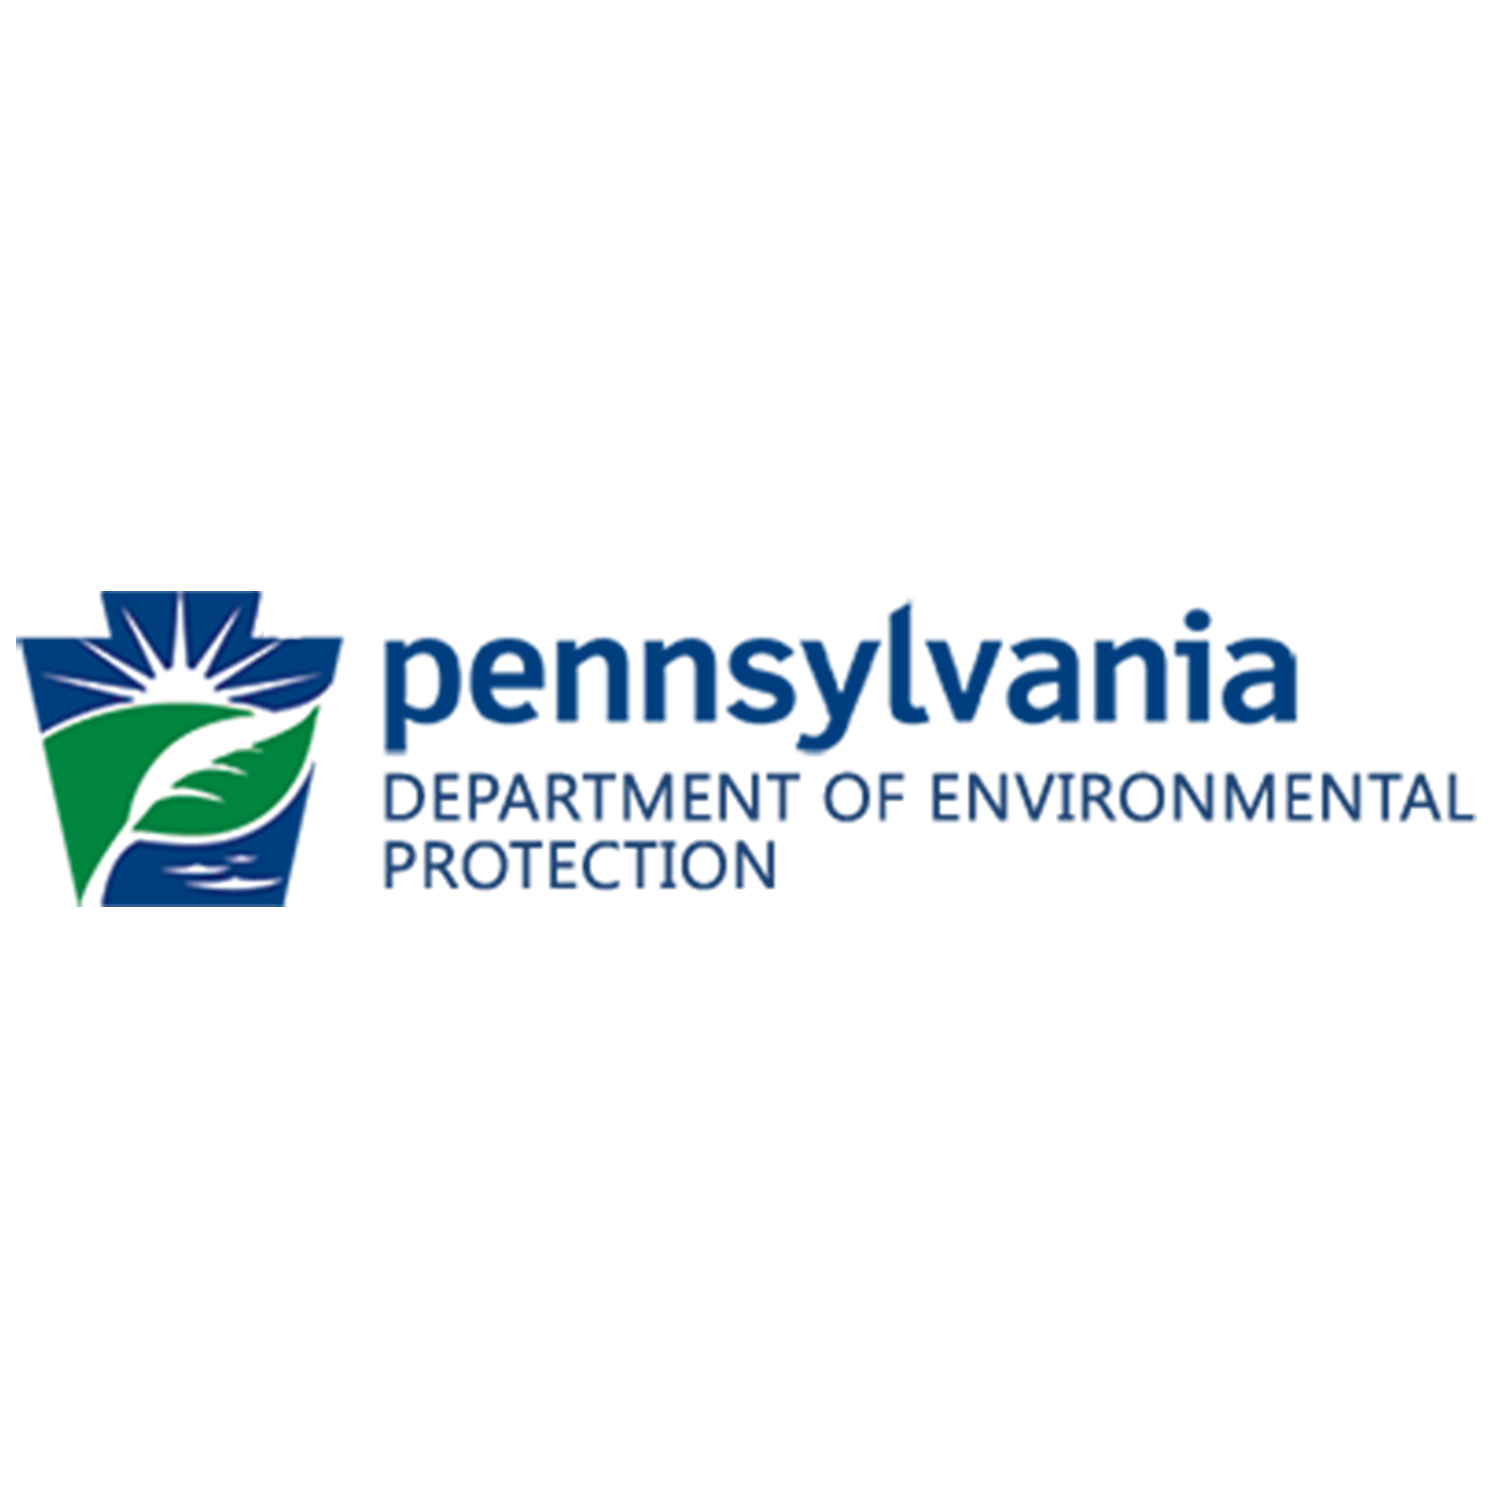 PA Department of Environmental Protection emergency backup generator